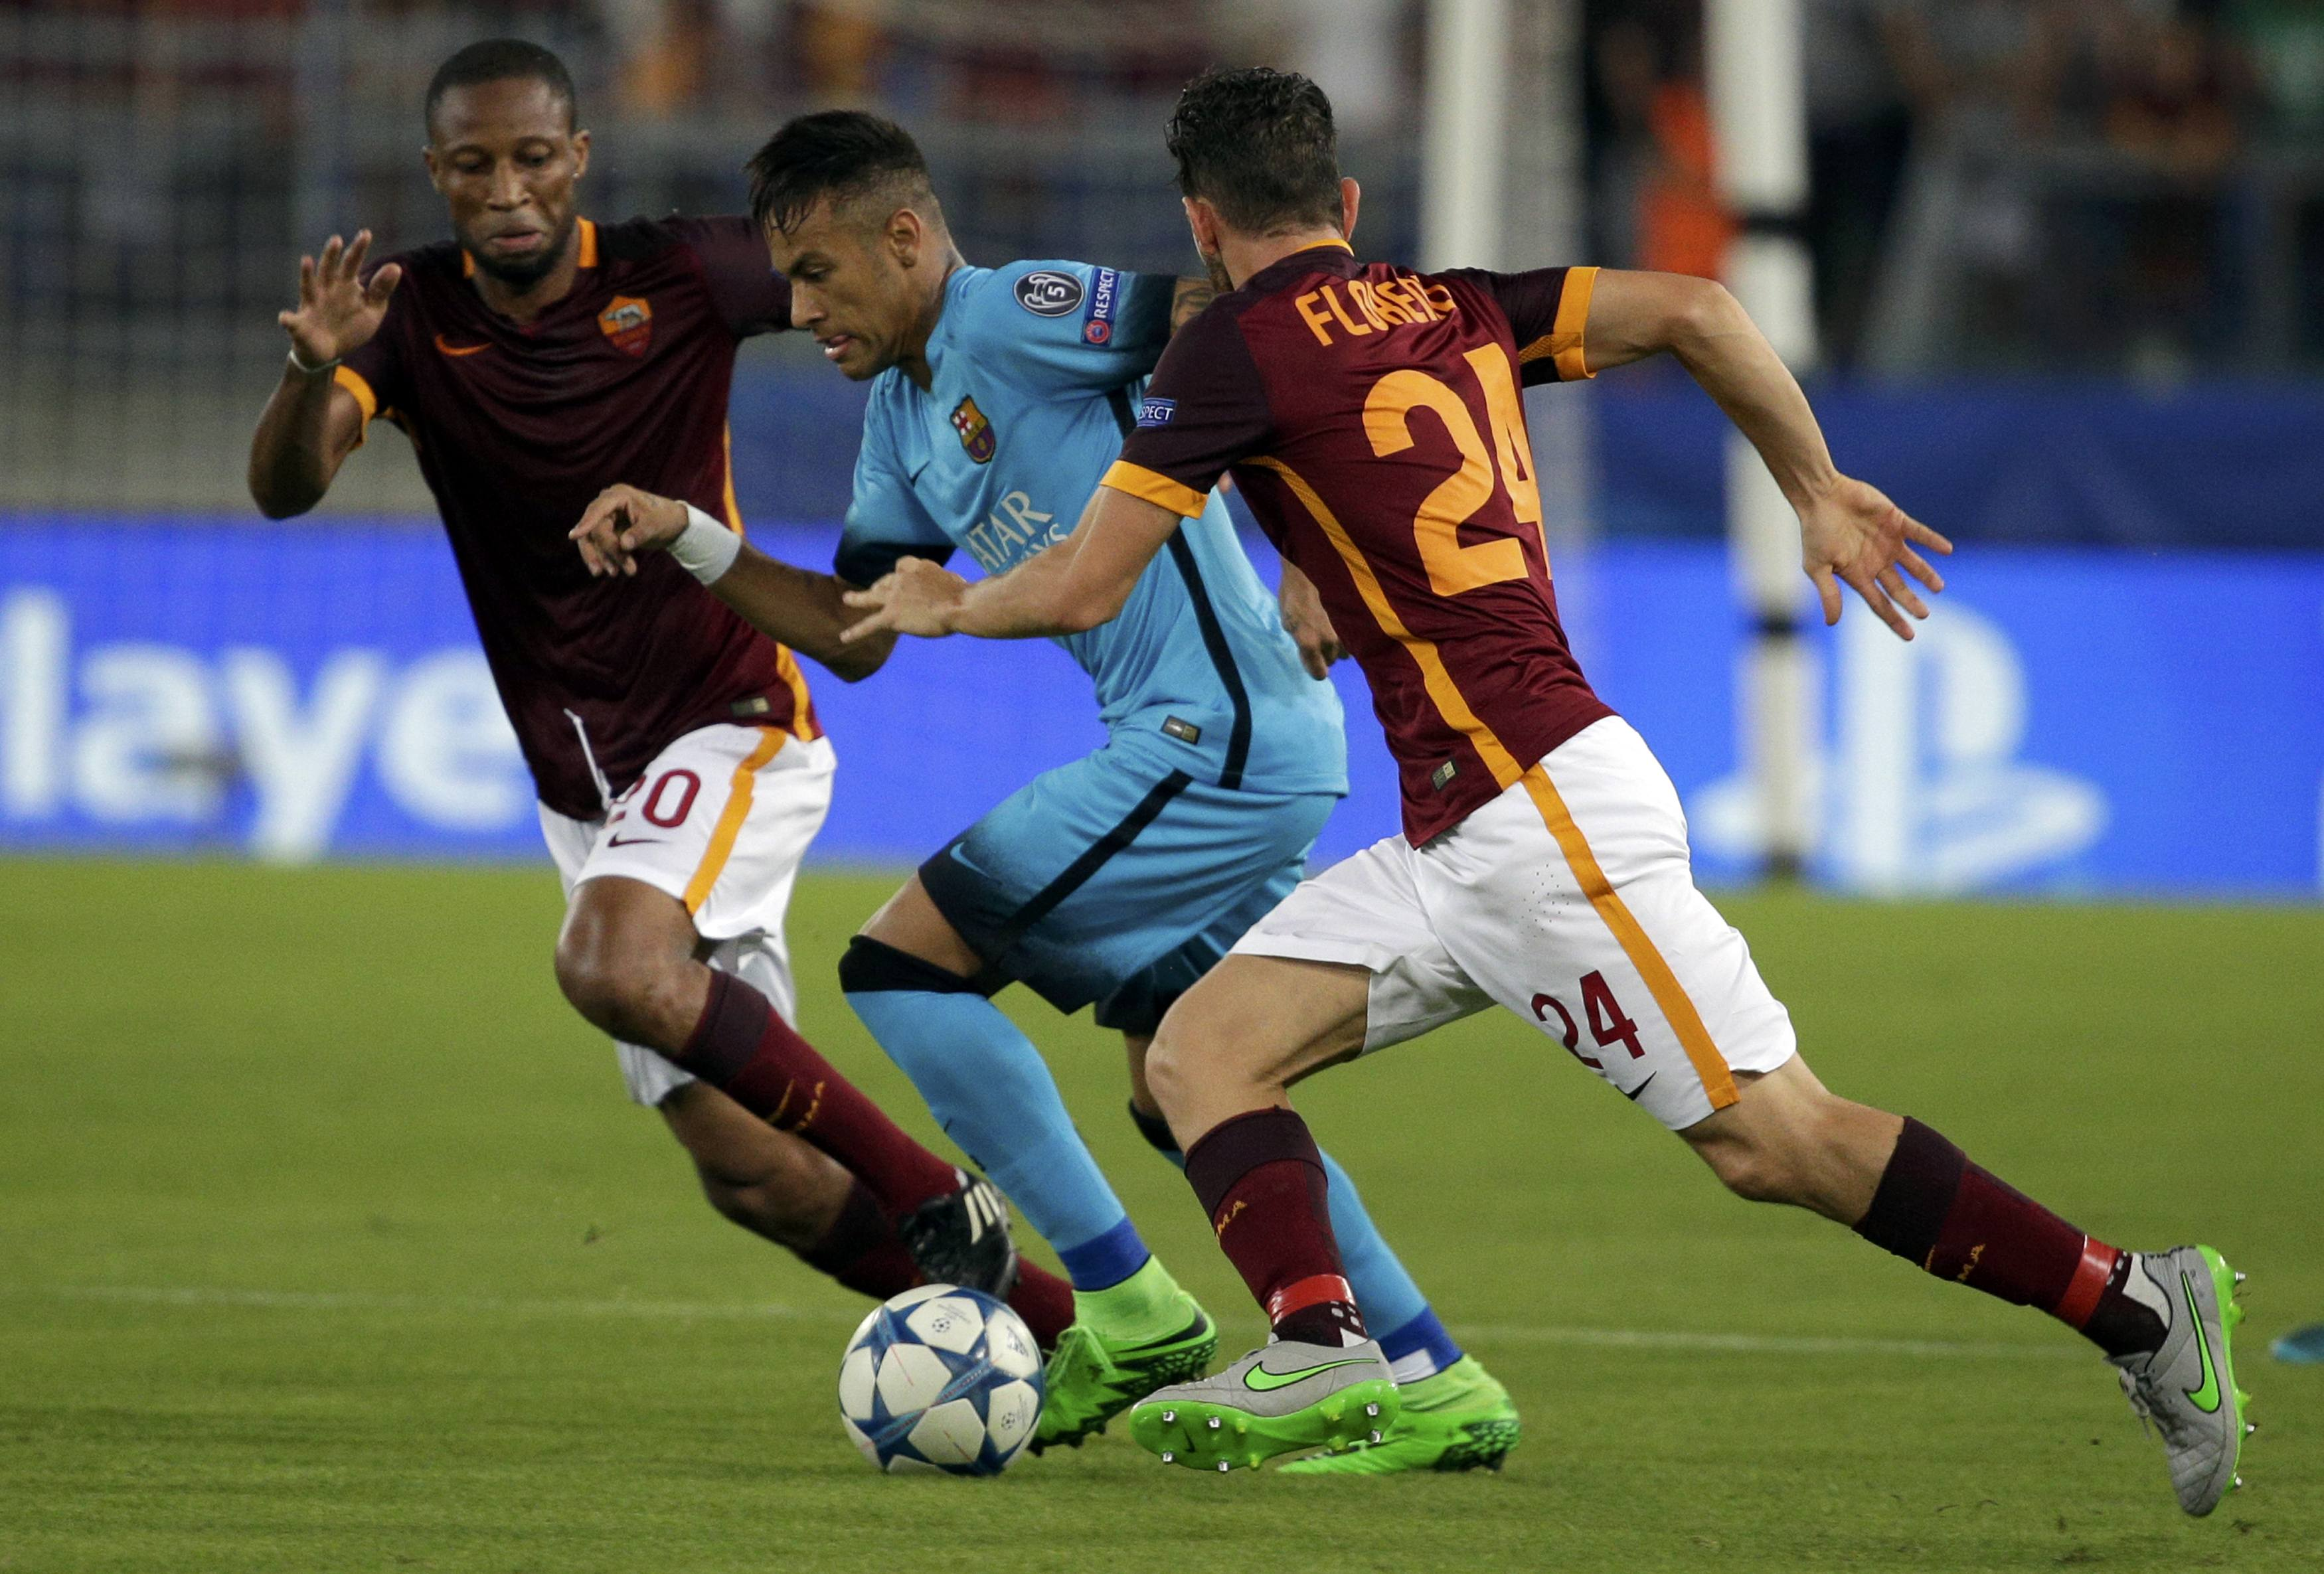 AS Roma's Seydou Keita  (L) and Alessandro Florenzi challenges Barcelona's Neymar during their Champions League Group E stage match at the Olympic stadium in Rome, Italy , September 16, 2015. REUTERS/Max Rossi